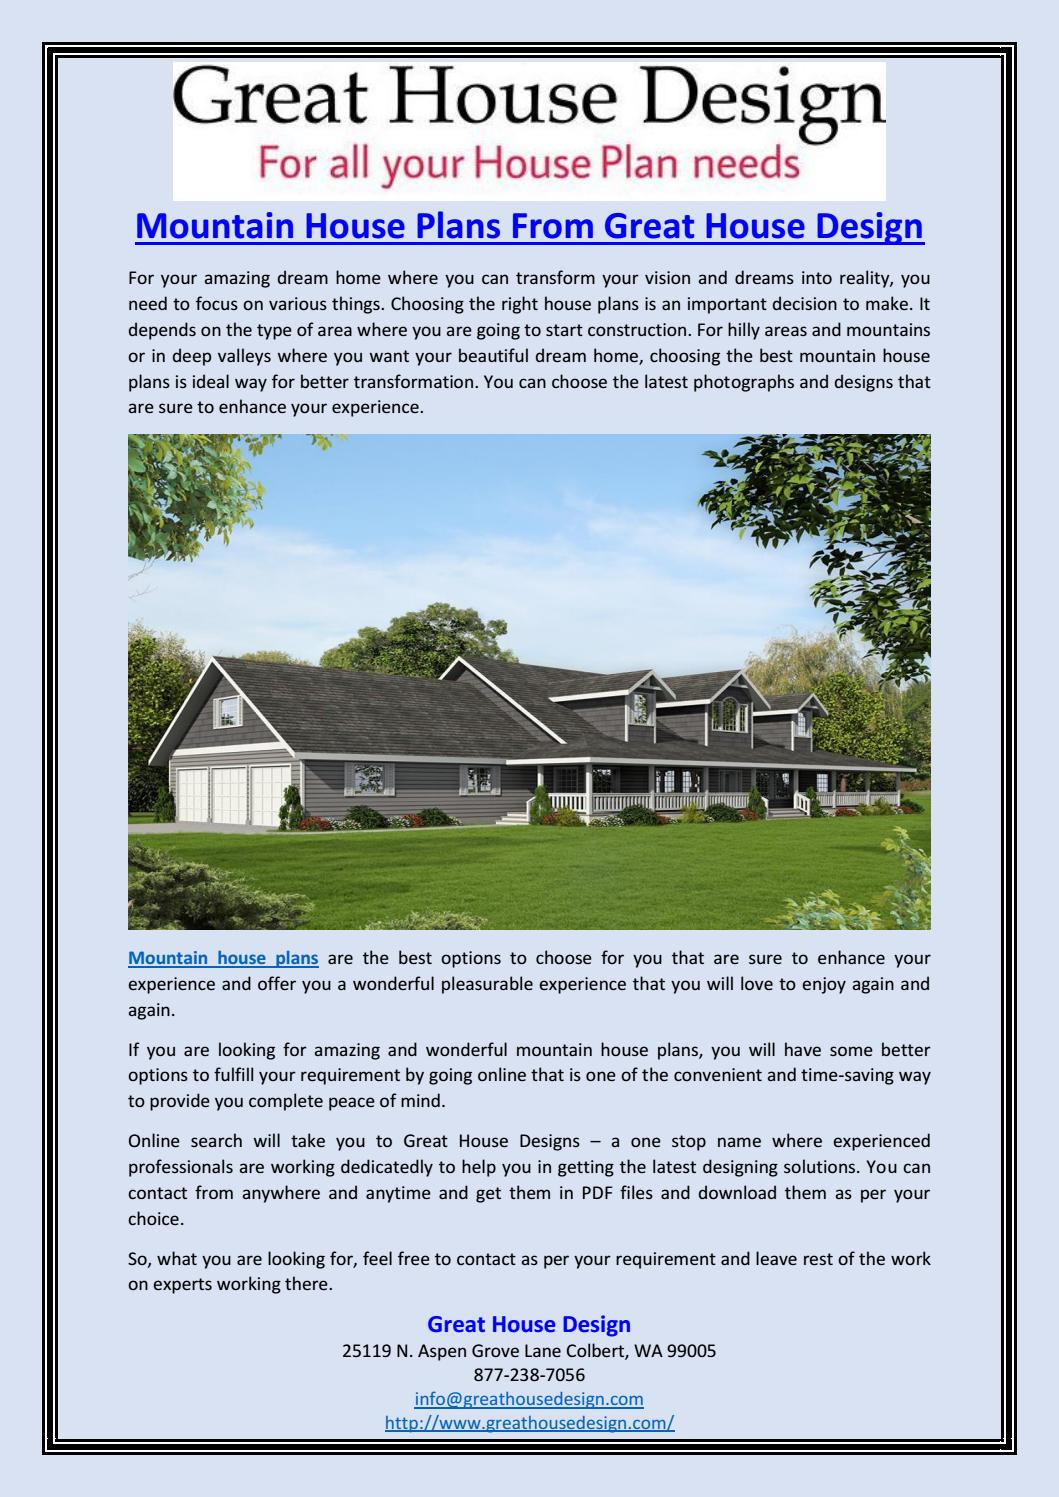 mountain house plans from great hou